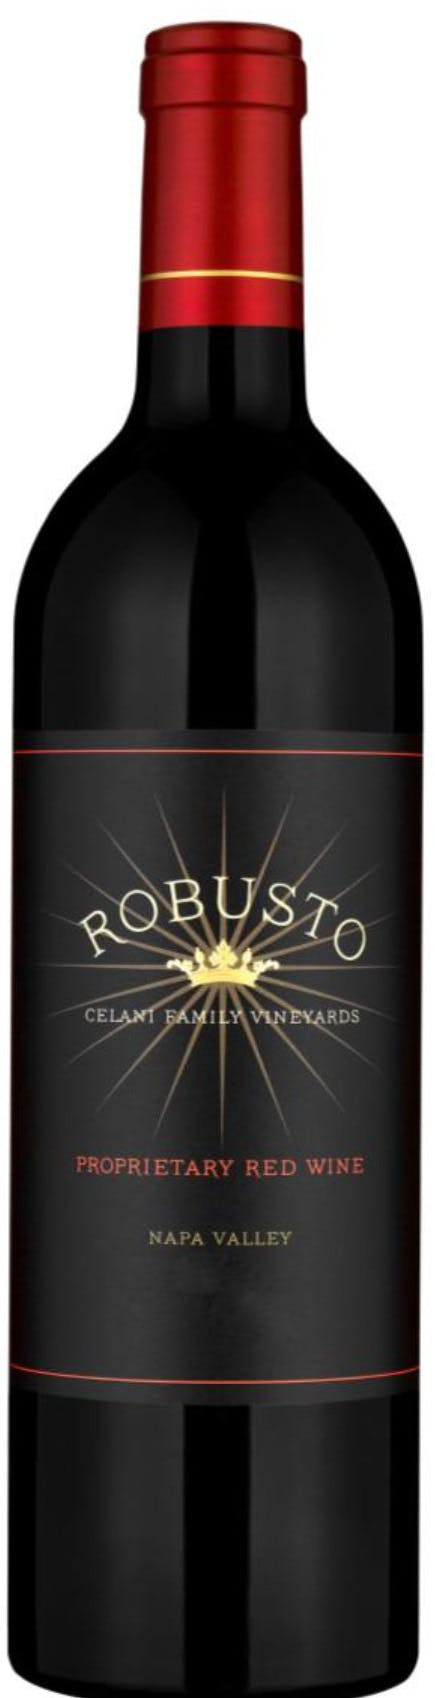 Celani Family Vineyards Robusto Proprietary Red 2017 - Vicker's Liquors